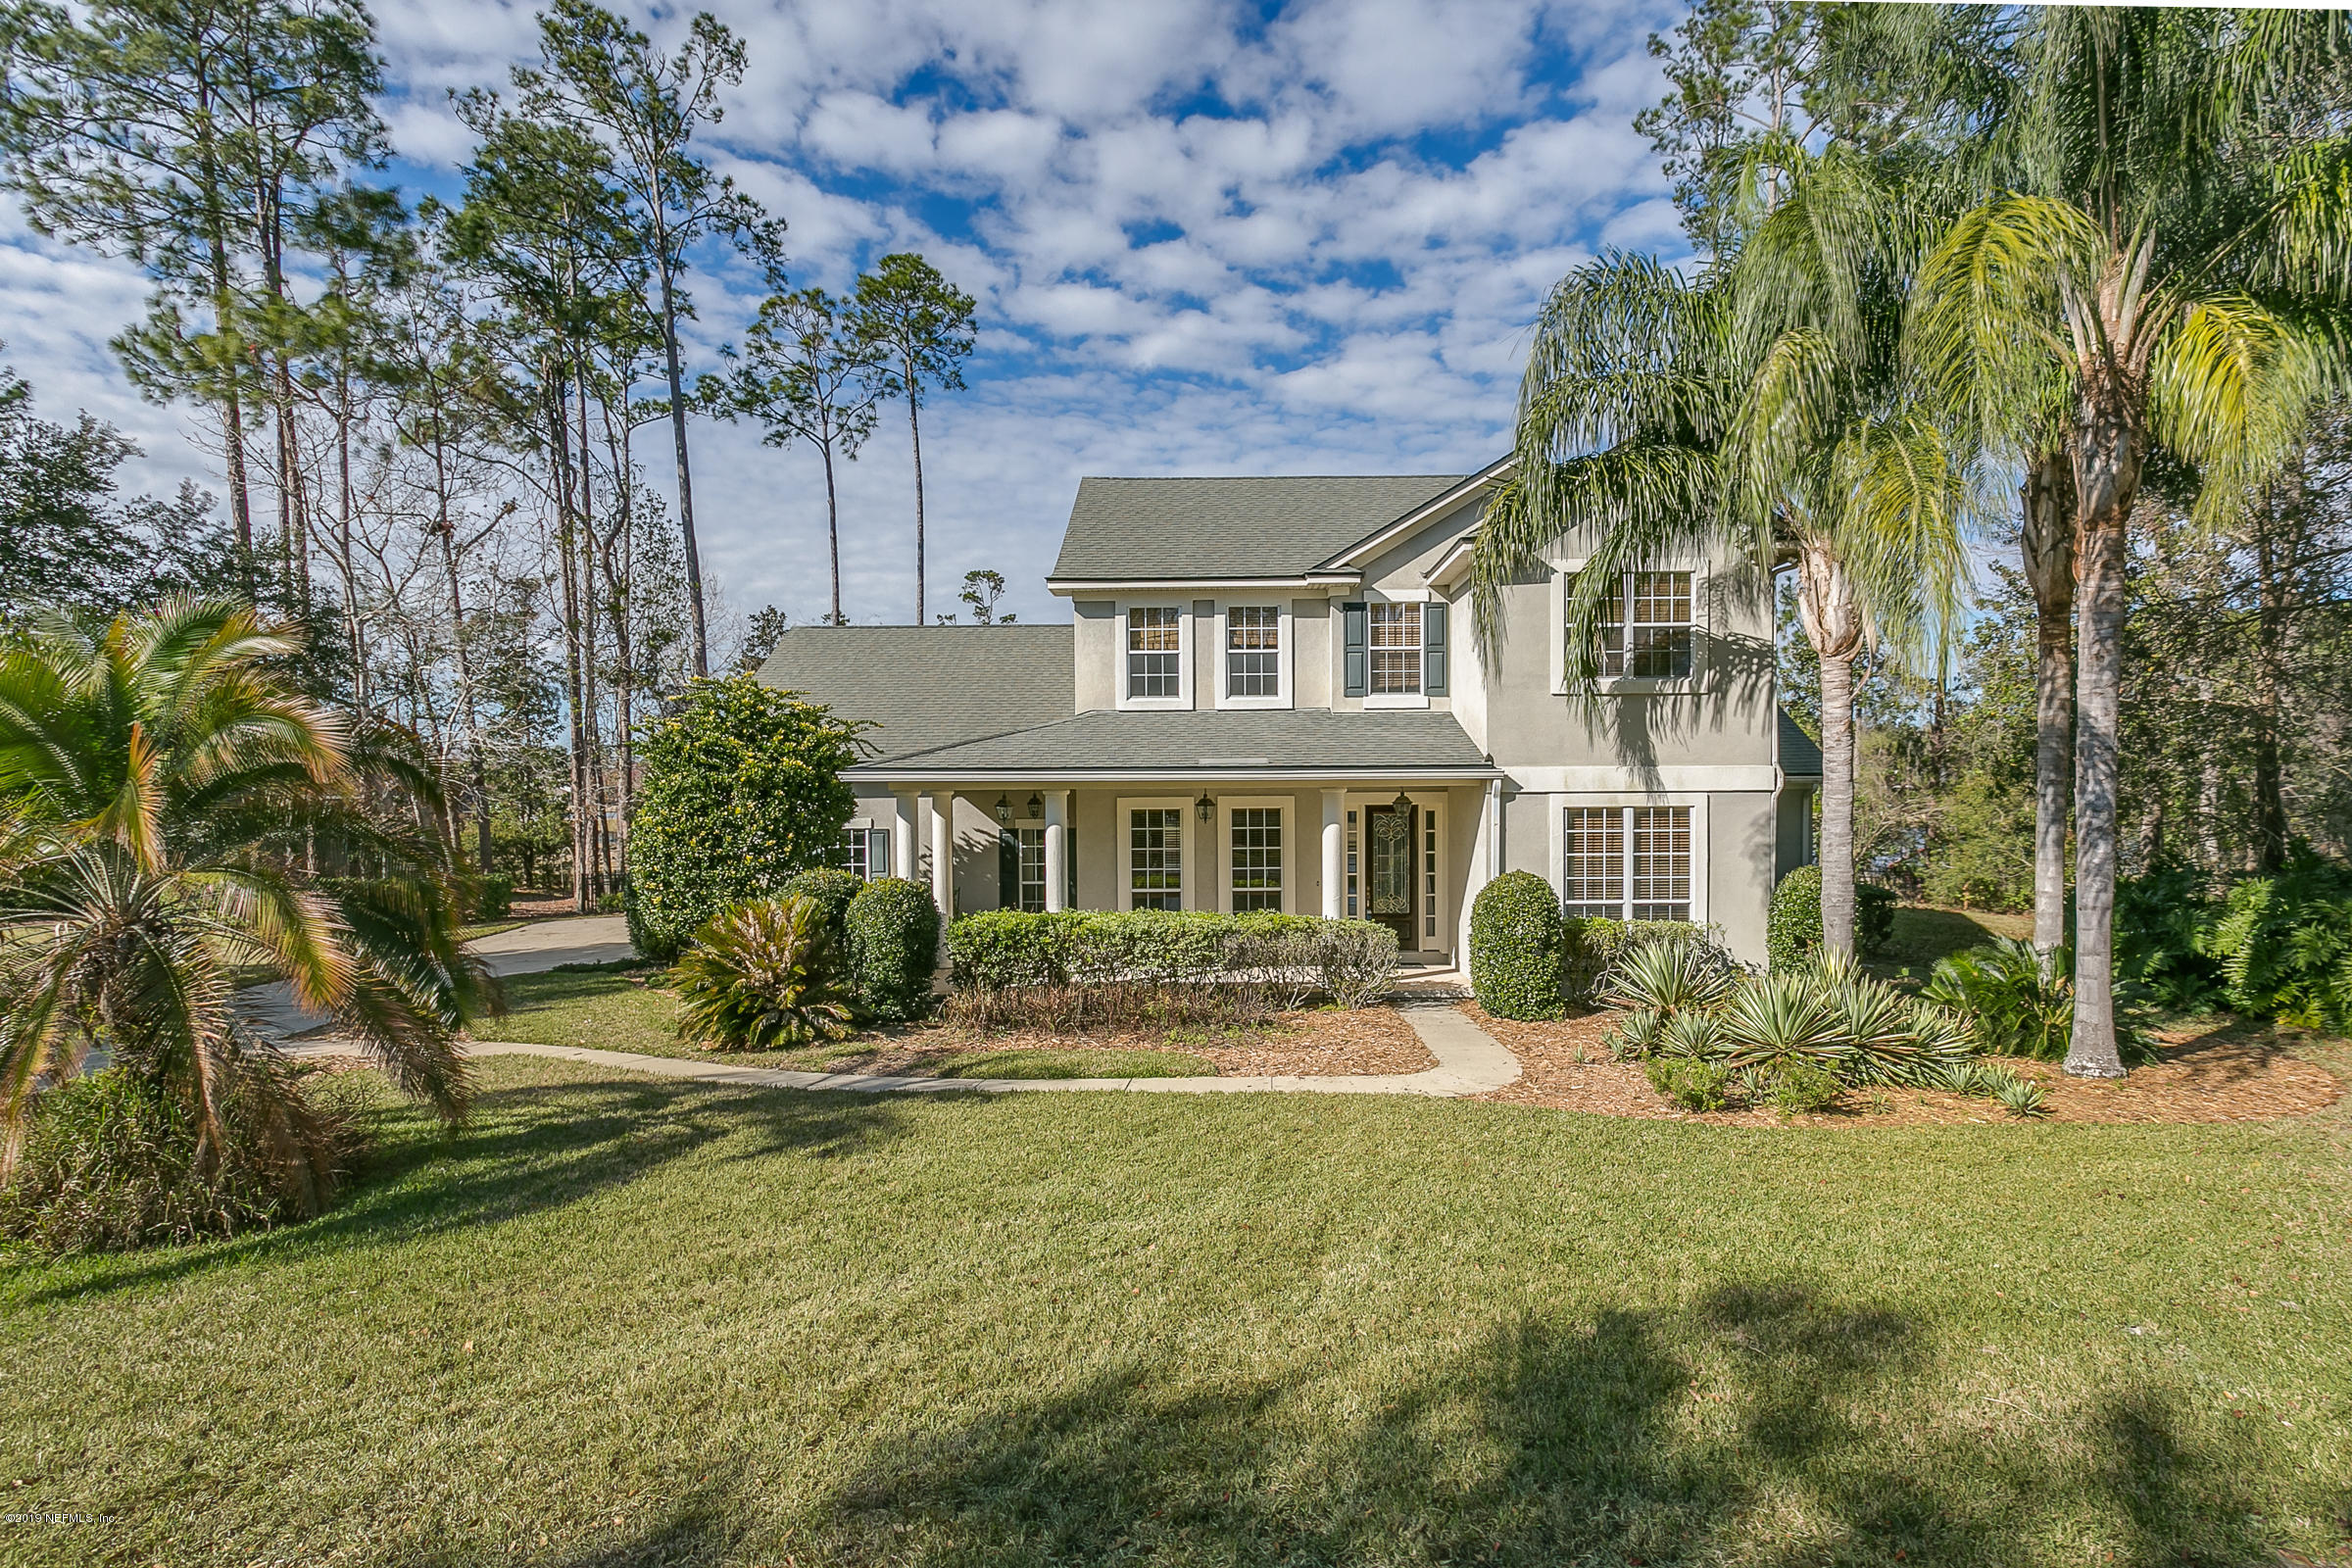 2567 WOODGROVE, FLEMING ISLAND, FLORIDA 32003, 5 Bedrooms Bedrooms, ,4 BathroomsBathrooms,Residential - single family,For sale,WOODGROVE,997168